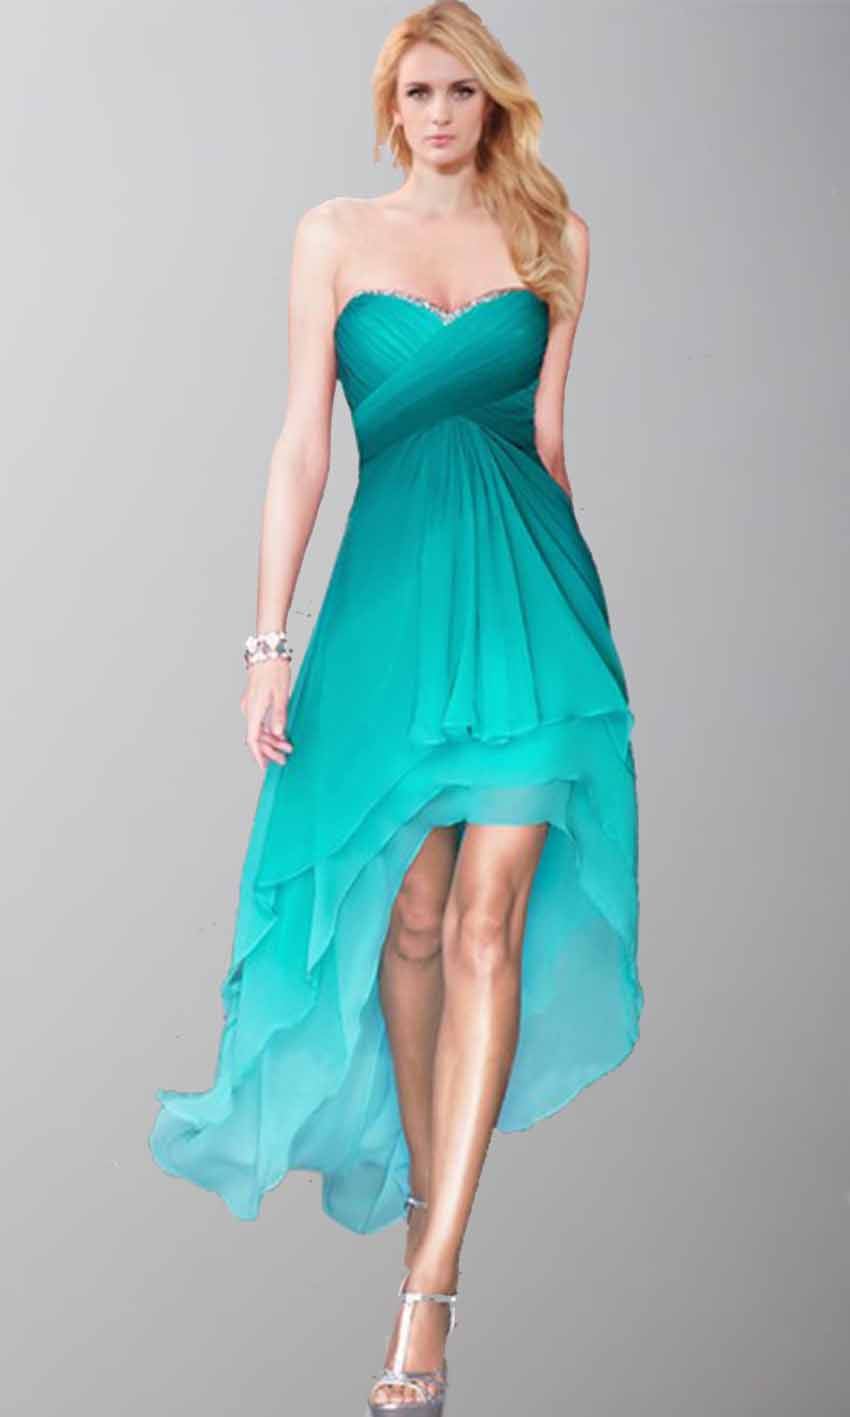 Pretty Sweetheart Ombre High Low Prom Party Dresses KSP412 [KSP412 ...